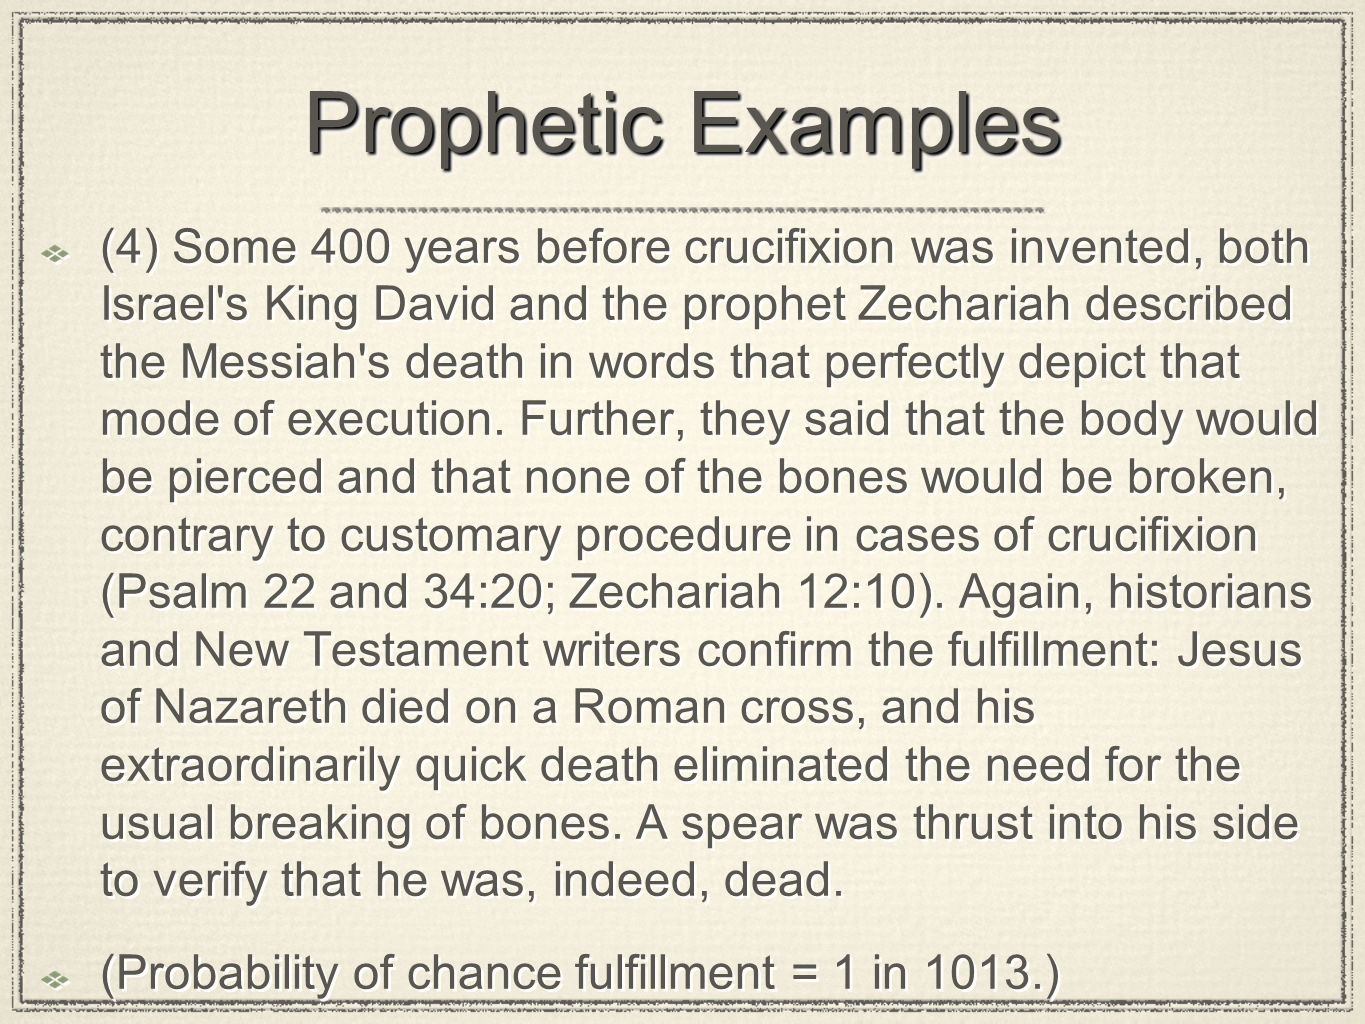 Prophetic Examples (4) Some 400 years before crucifixion was invented, both Israel's King David and the prophet Zechariah described the Messiah's deat